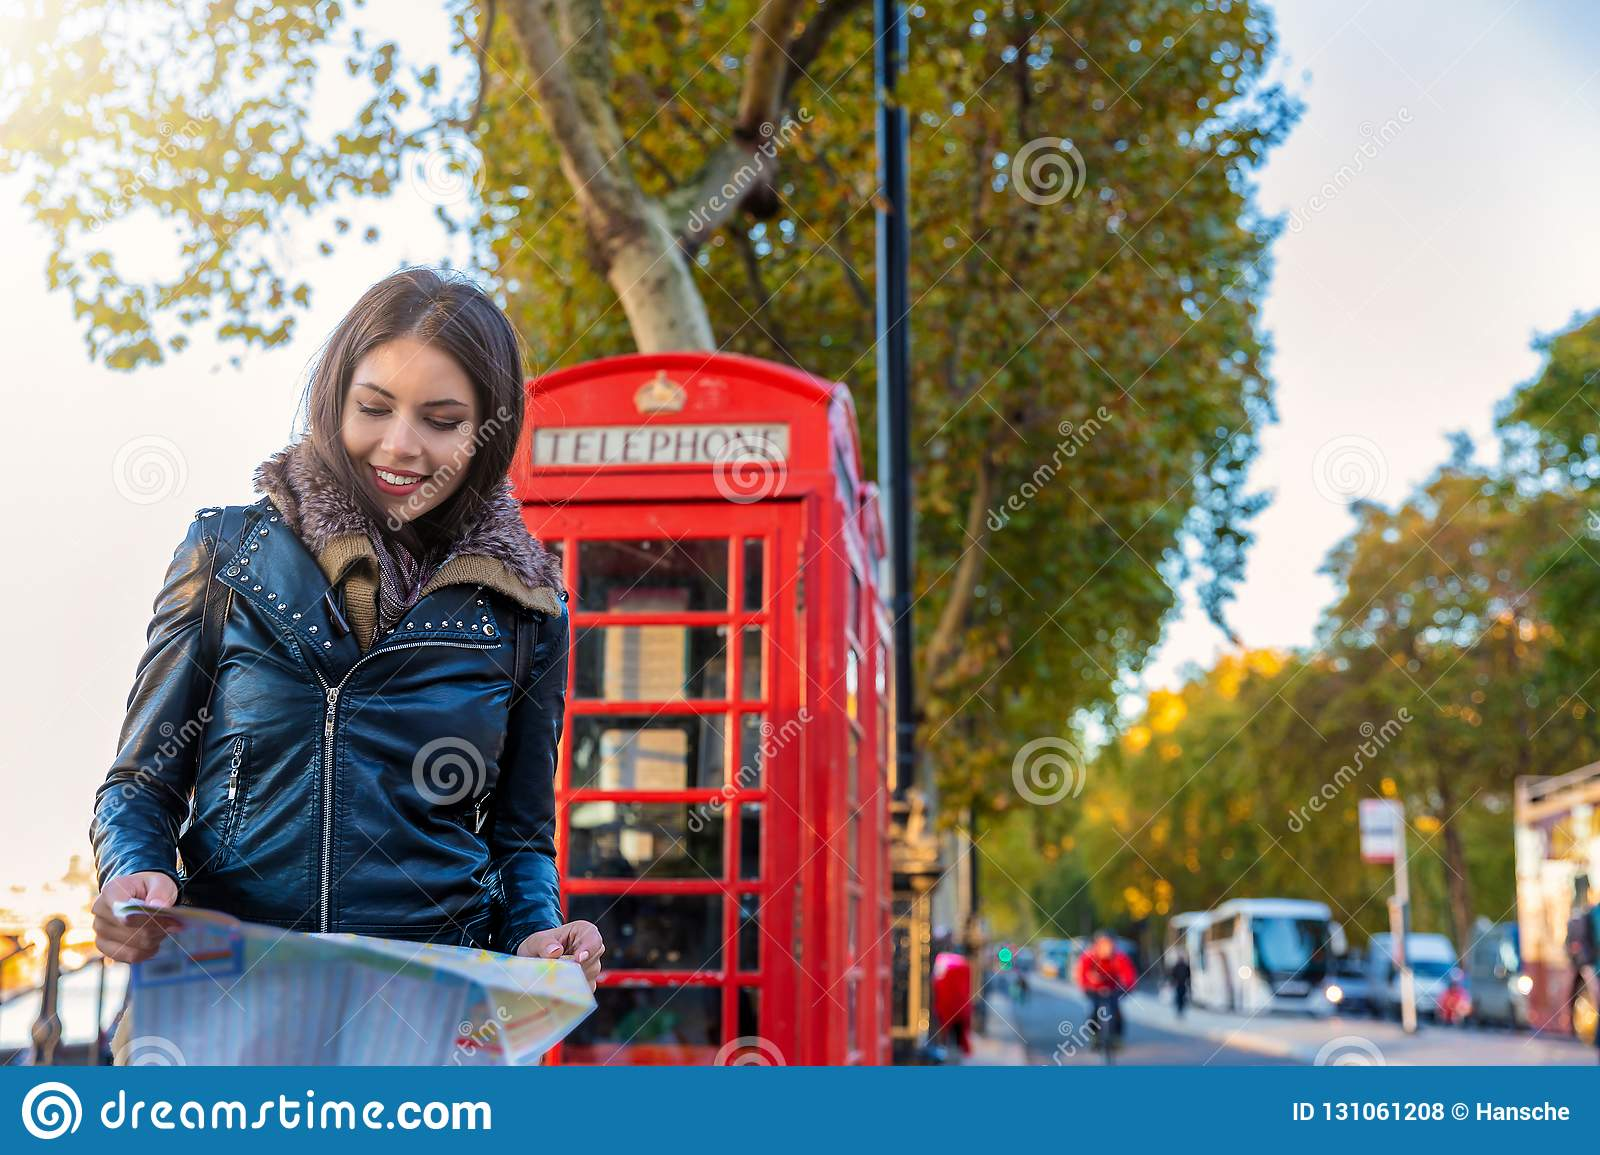 Female London tourist looks at a map in front of a red telephone booth